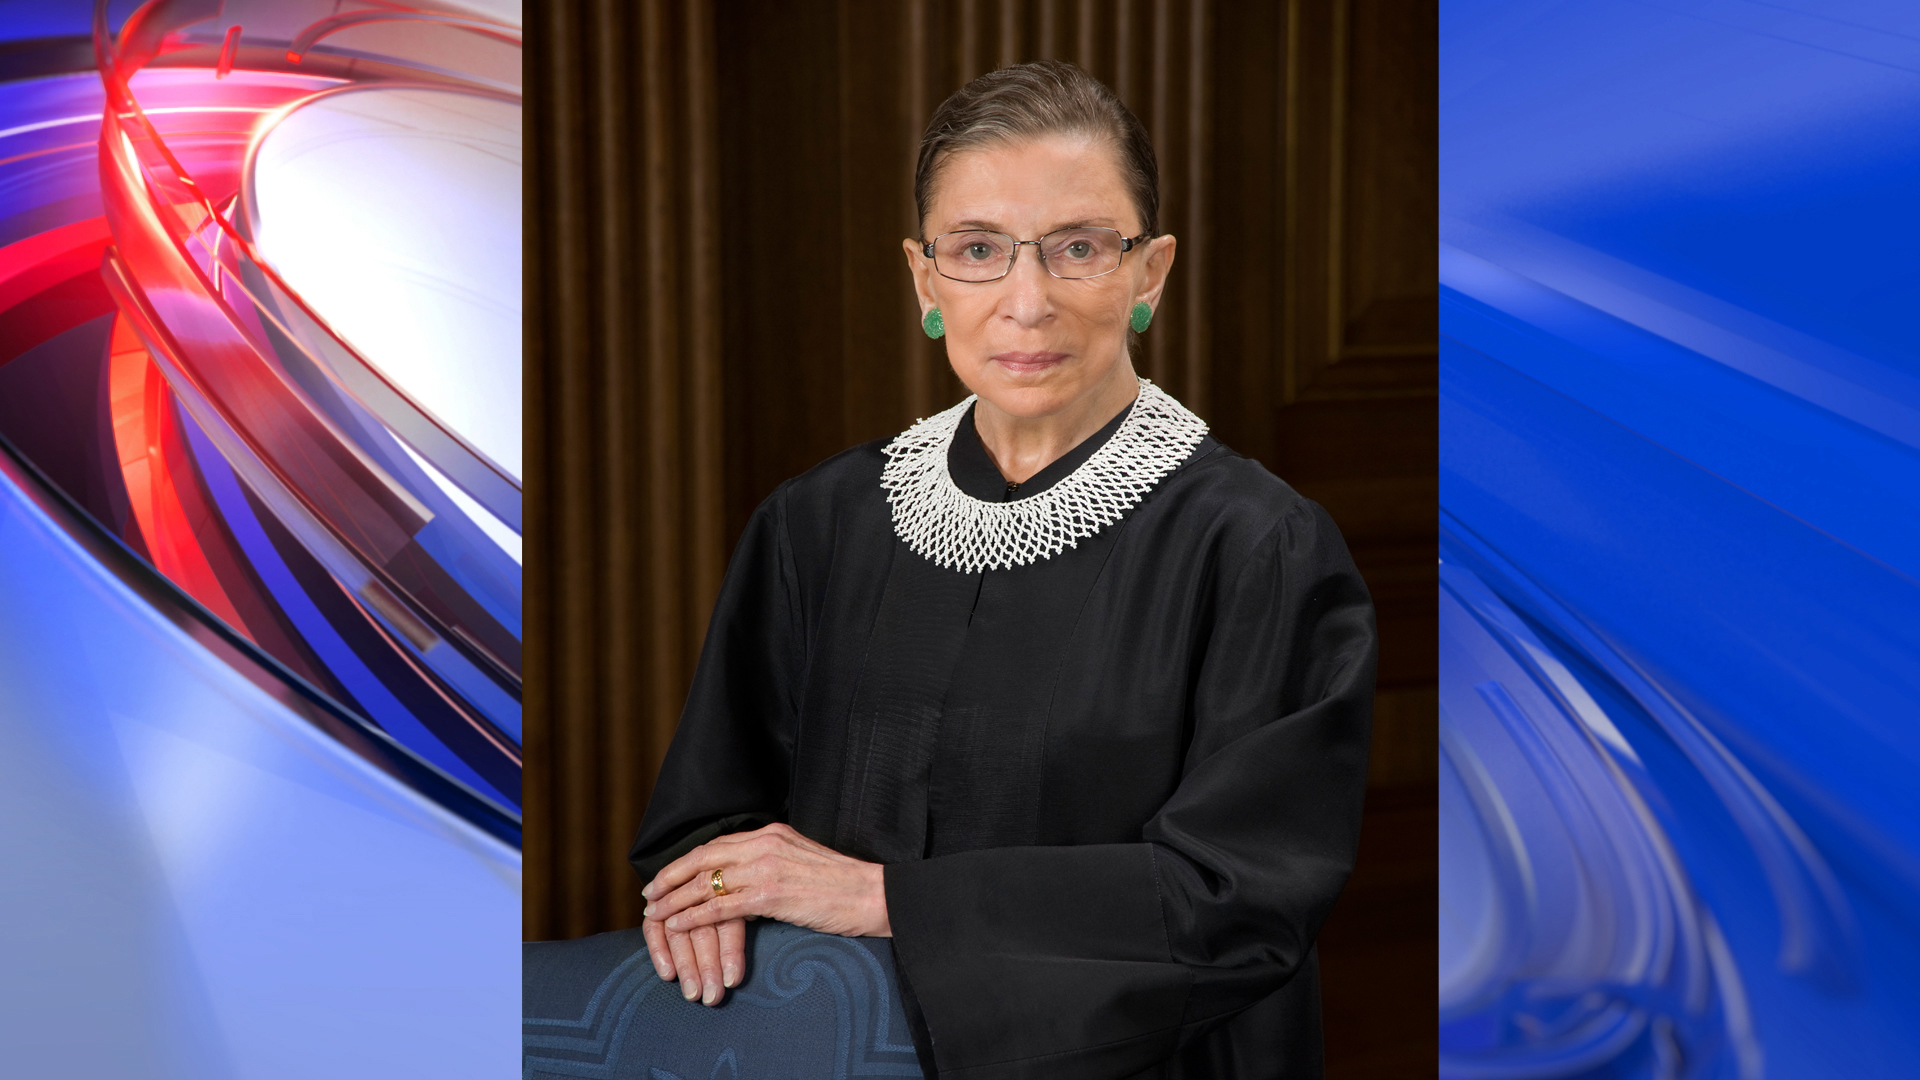 Justice Ruth Bader Ginsburg Criticized For Anti-Trump